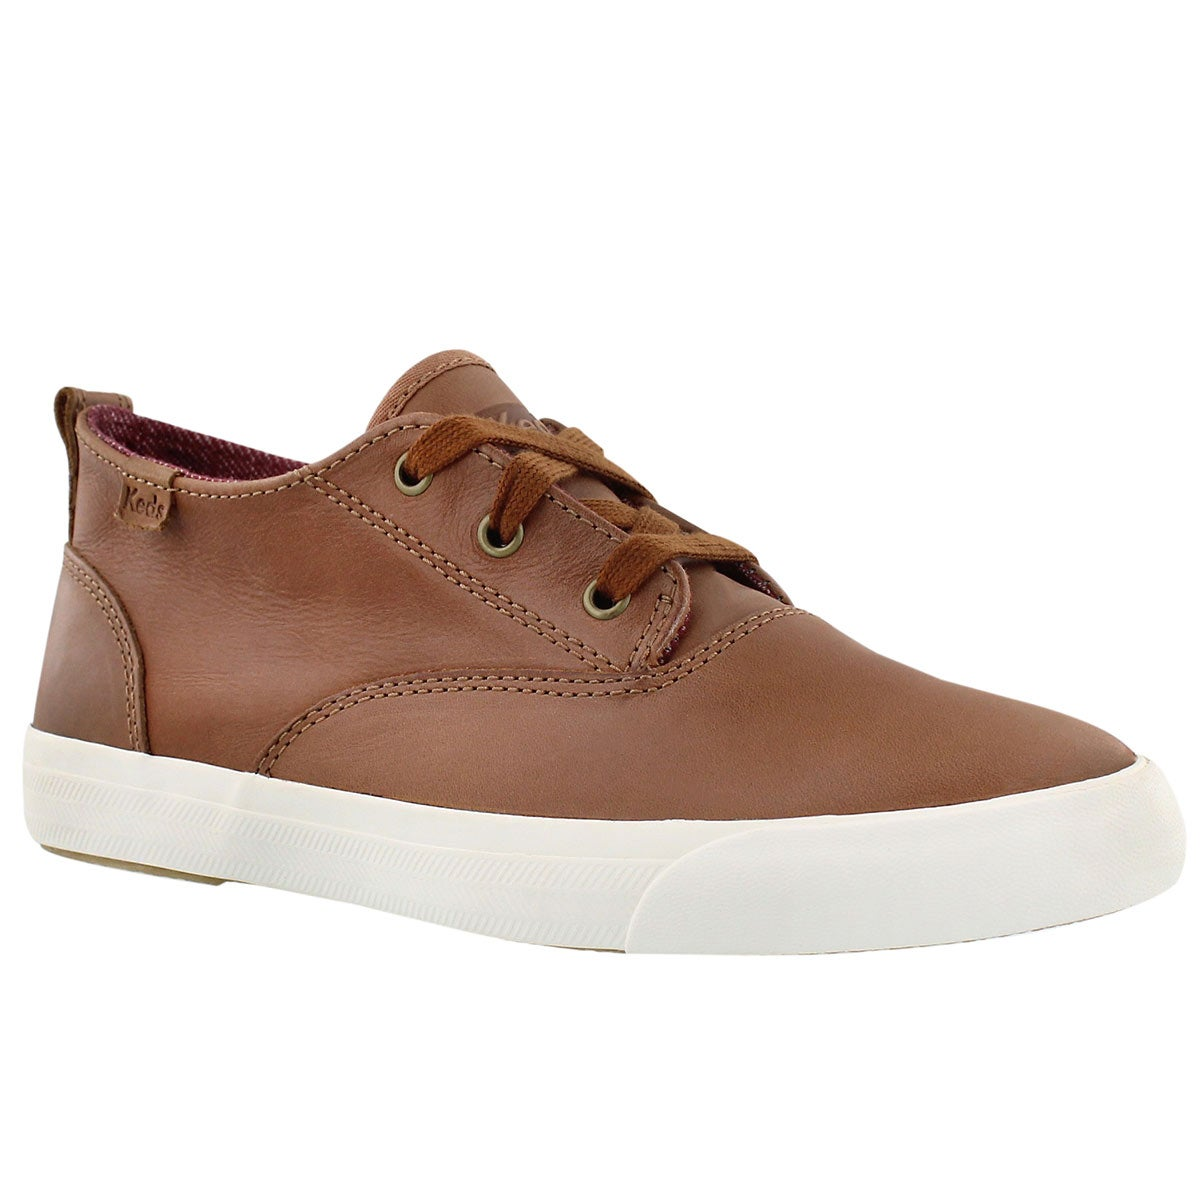 Lds Triumph Mid acorn lace up sneaker